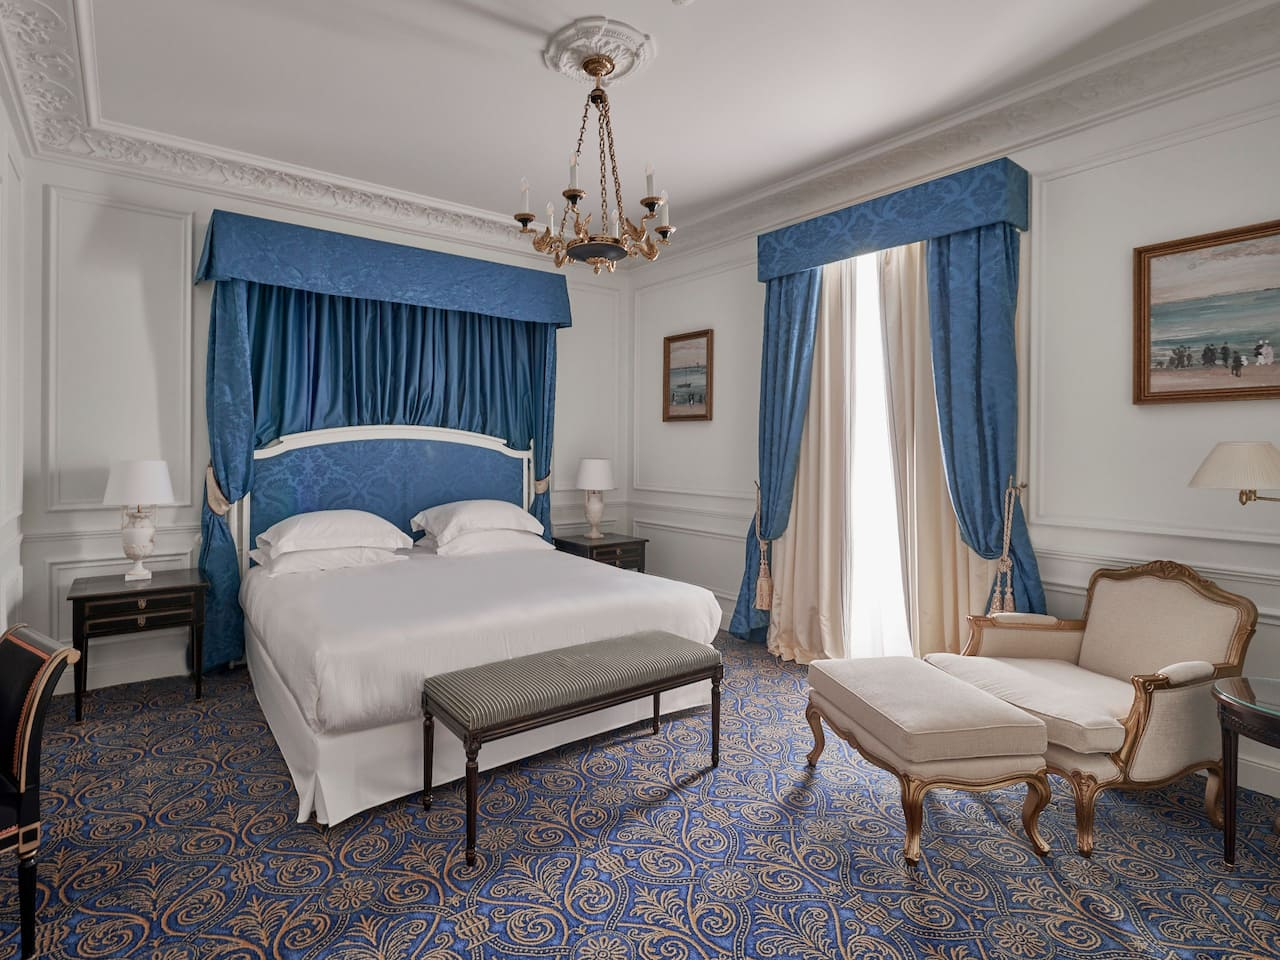 King Royal Suite Bedroom with Ocean View at Hotel du Palais Biarritz